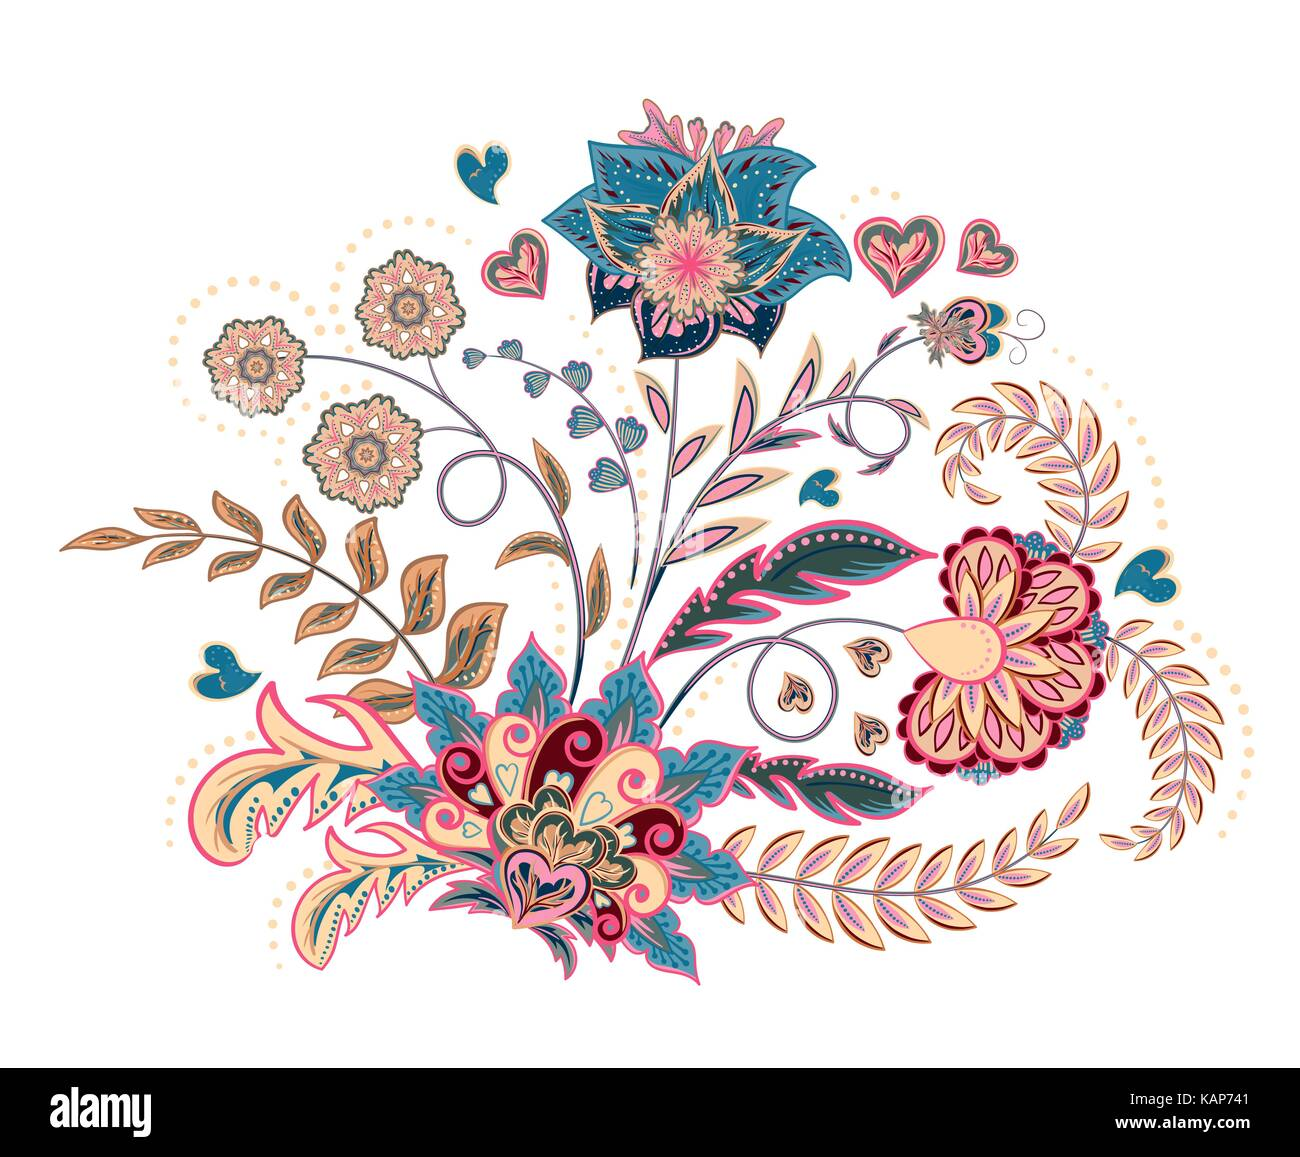 Embroidery Stitches With Fantasy Flowers In Pastel Color Vector